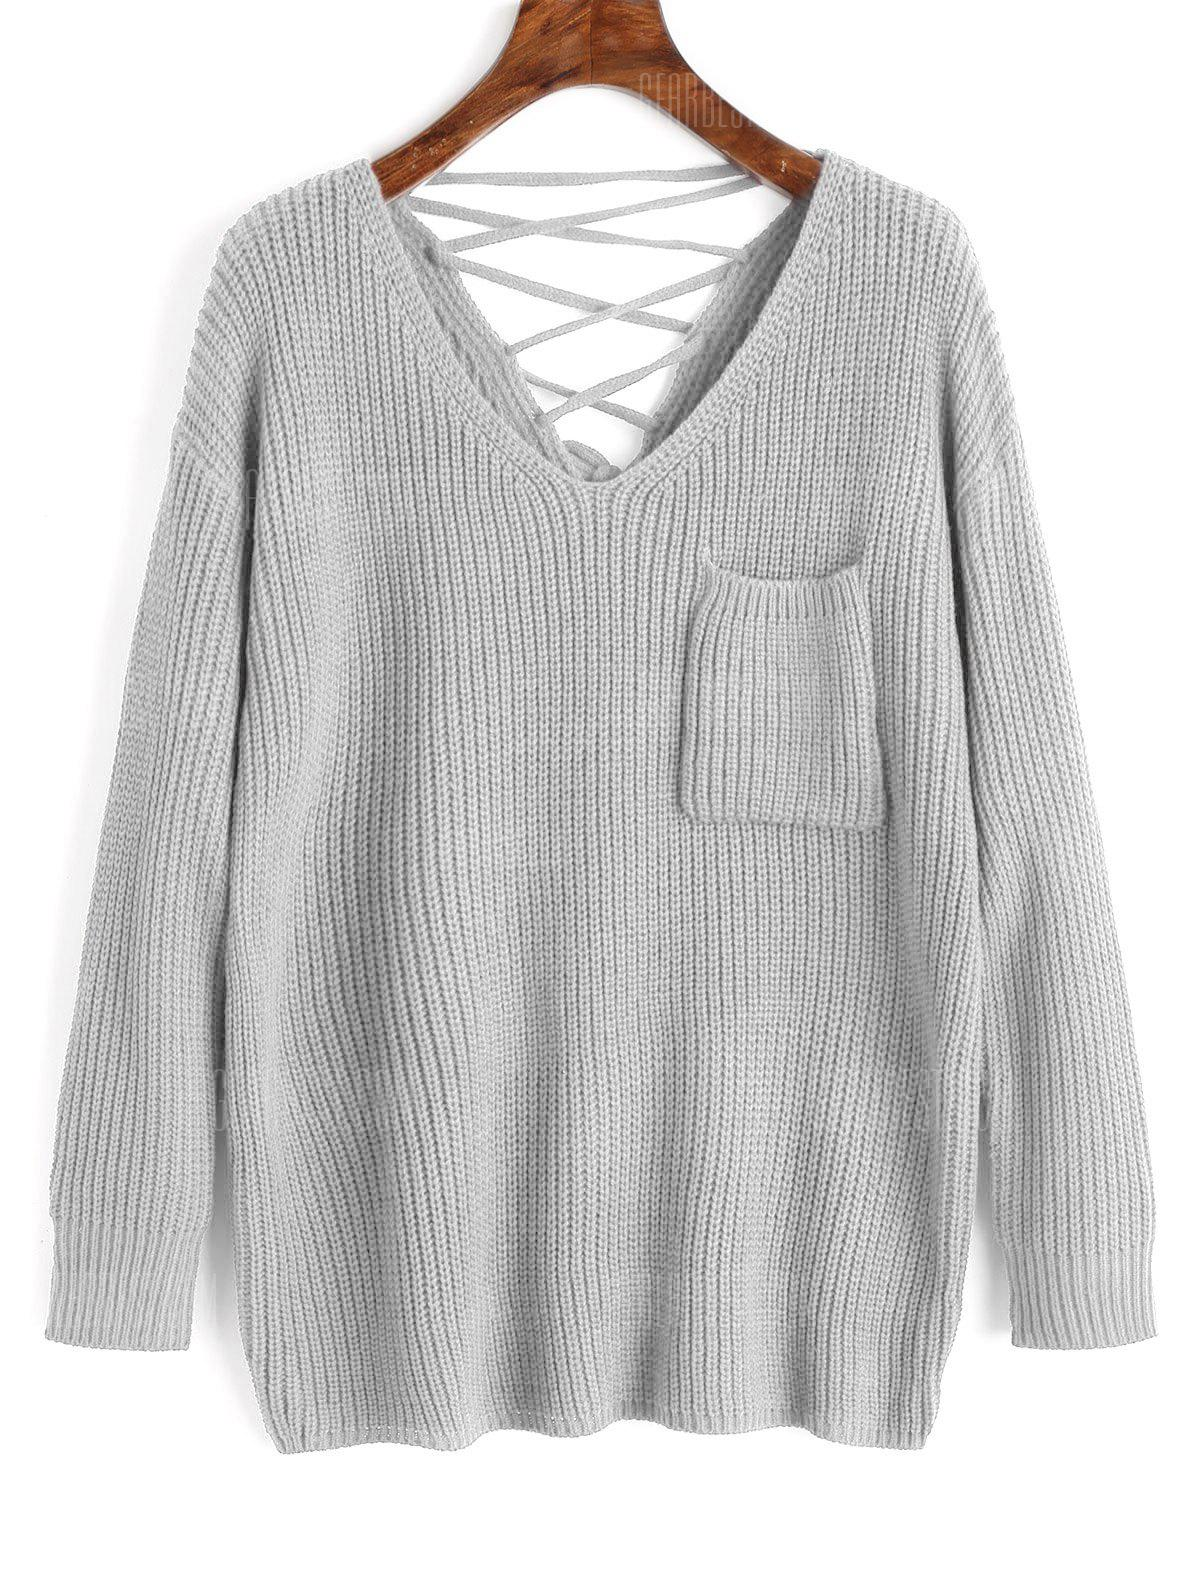 Lace Up Back V Neck Pullover Sweater